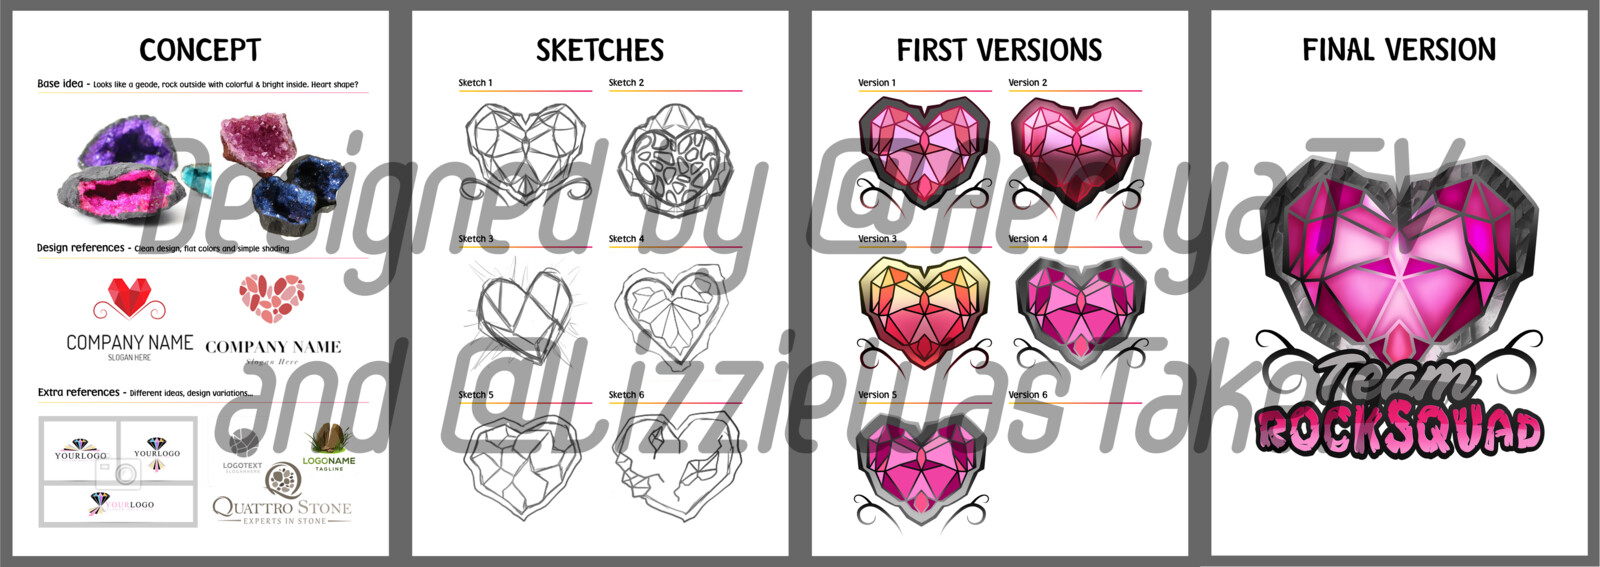 Here's full details on the process of the logo. I collabed with @LizzieWasTaken on Twitter for this !